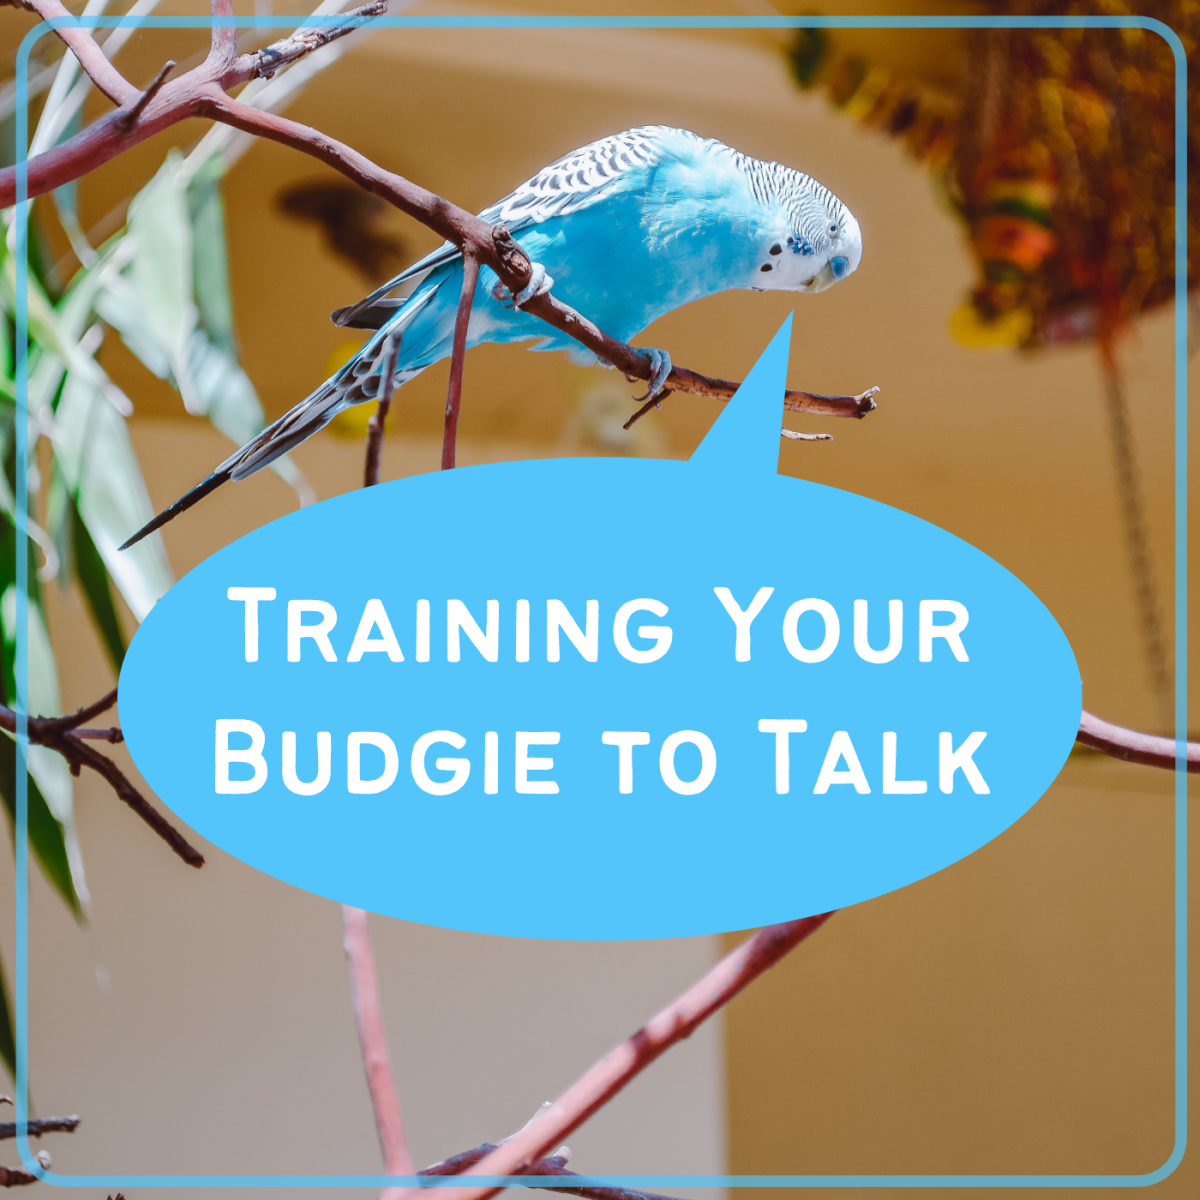 Get tips from a long-time parakeet owner on how to train your pets to talk!